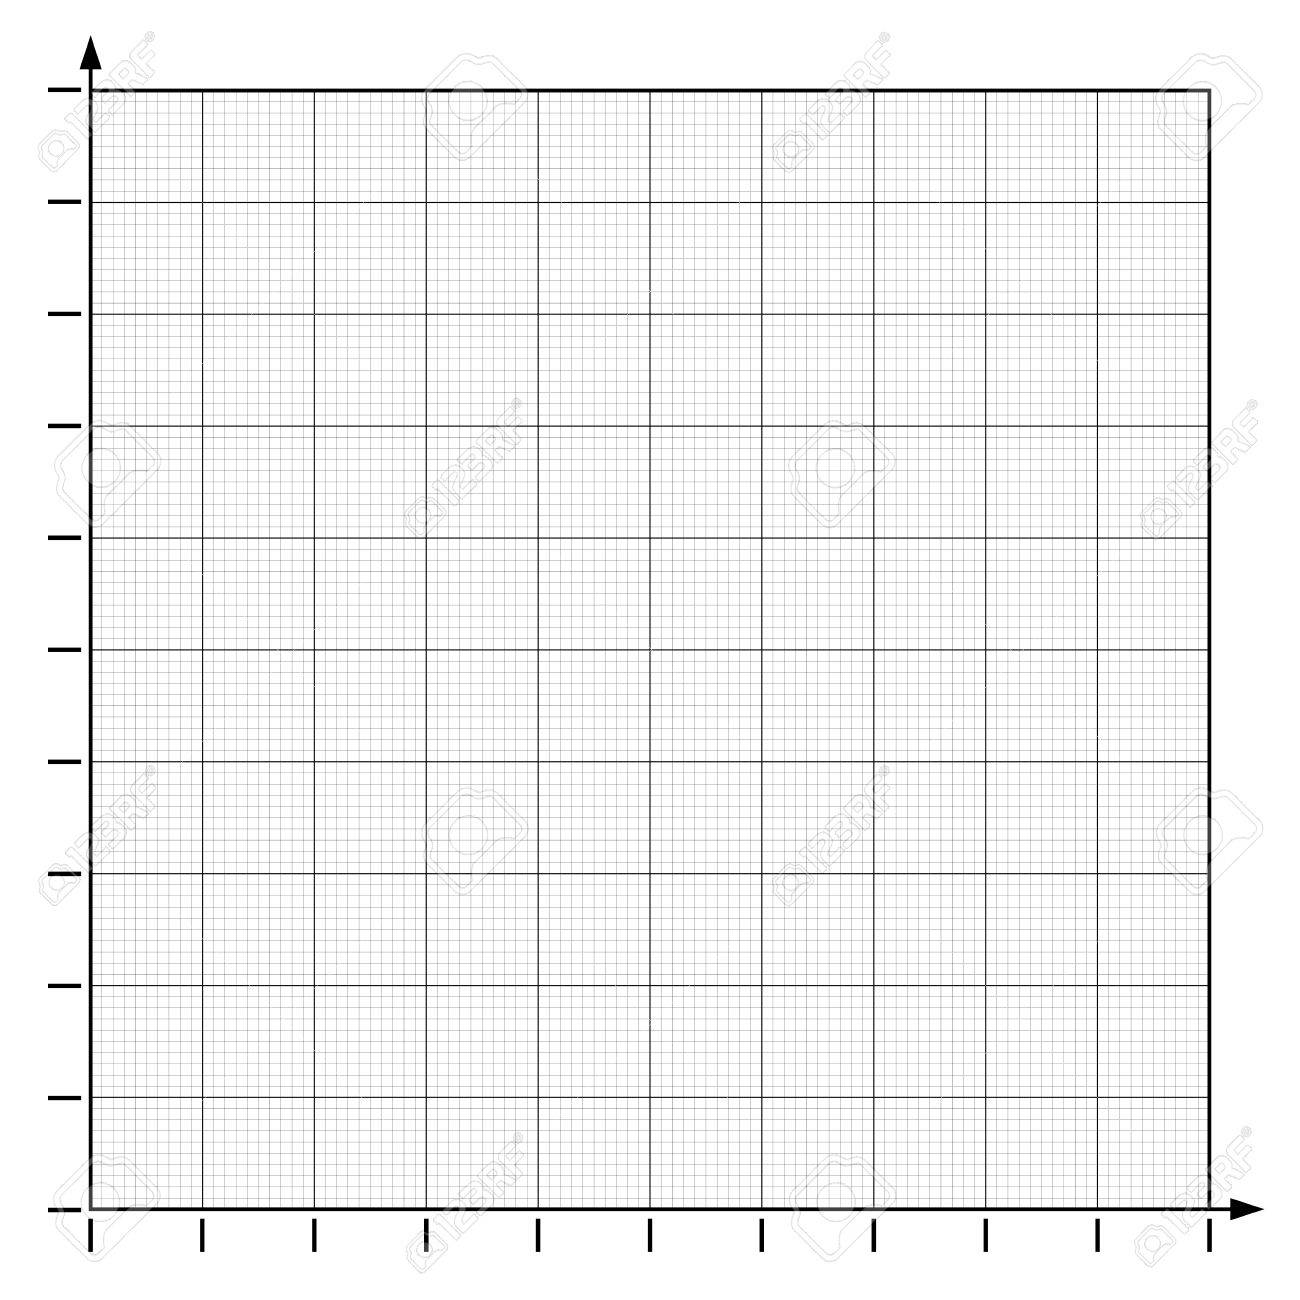 graph paper coordinate paper grid paper squared paper royalty free rh 123rf com graph paper background vector grid paper vector free download